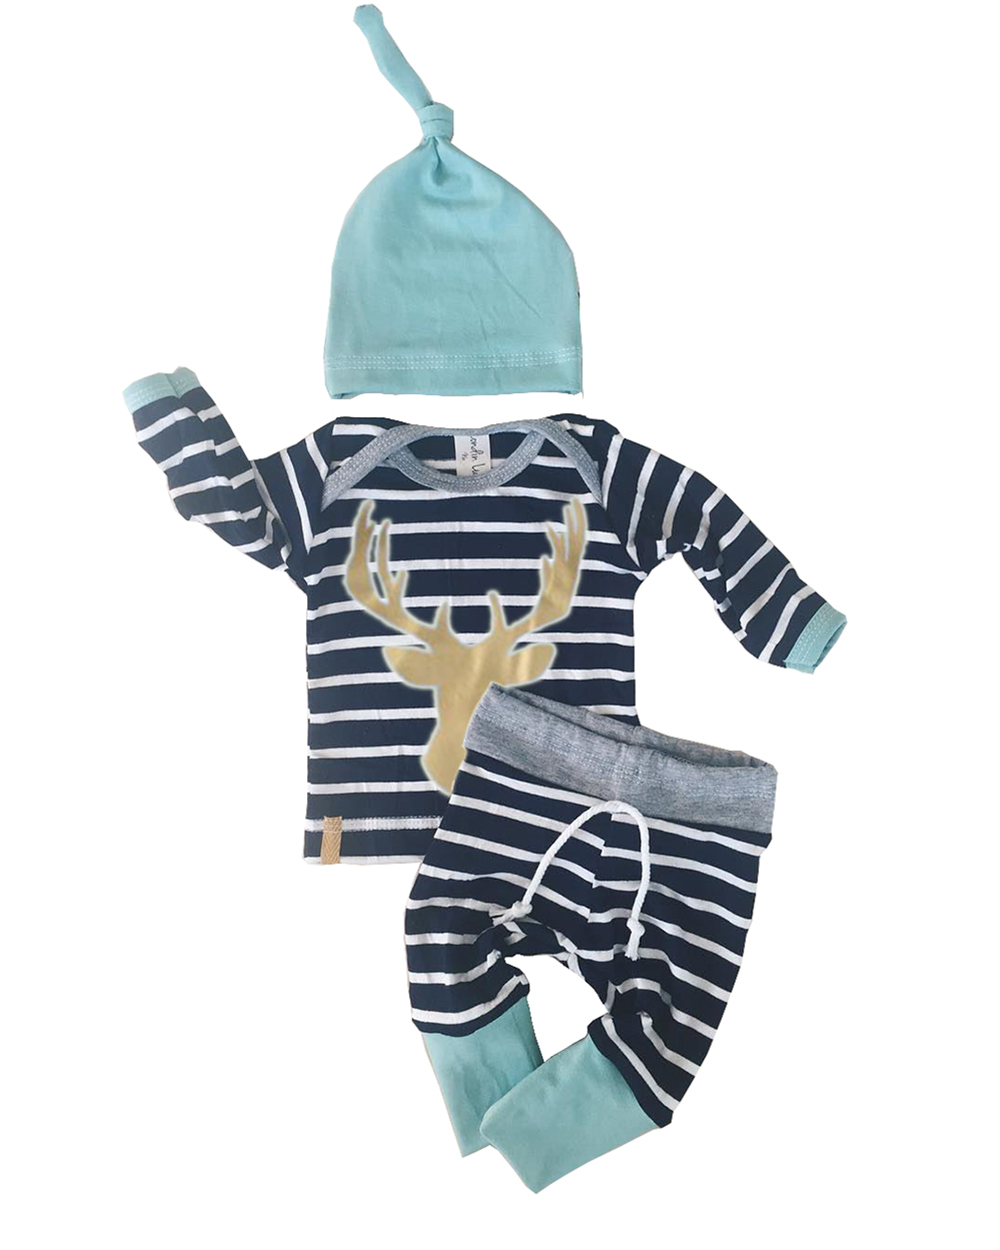 2017 New Newborn Bebes Baby Boy Girl Clothes Long Sleeve Striped Tops Pants Hat 3PCS Outfits Set Baby Clothing For Newborns 0 24m newborn infant baby boy girl clothes set romper bodysuit tops rainbow long pants hat 3pcs toddler winter fall outfits